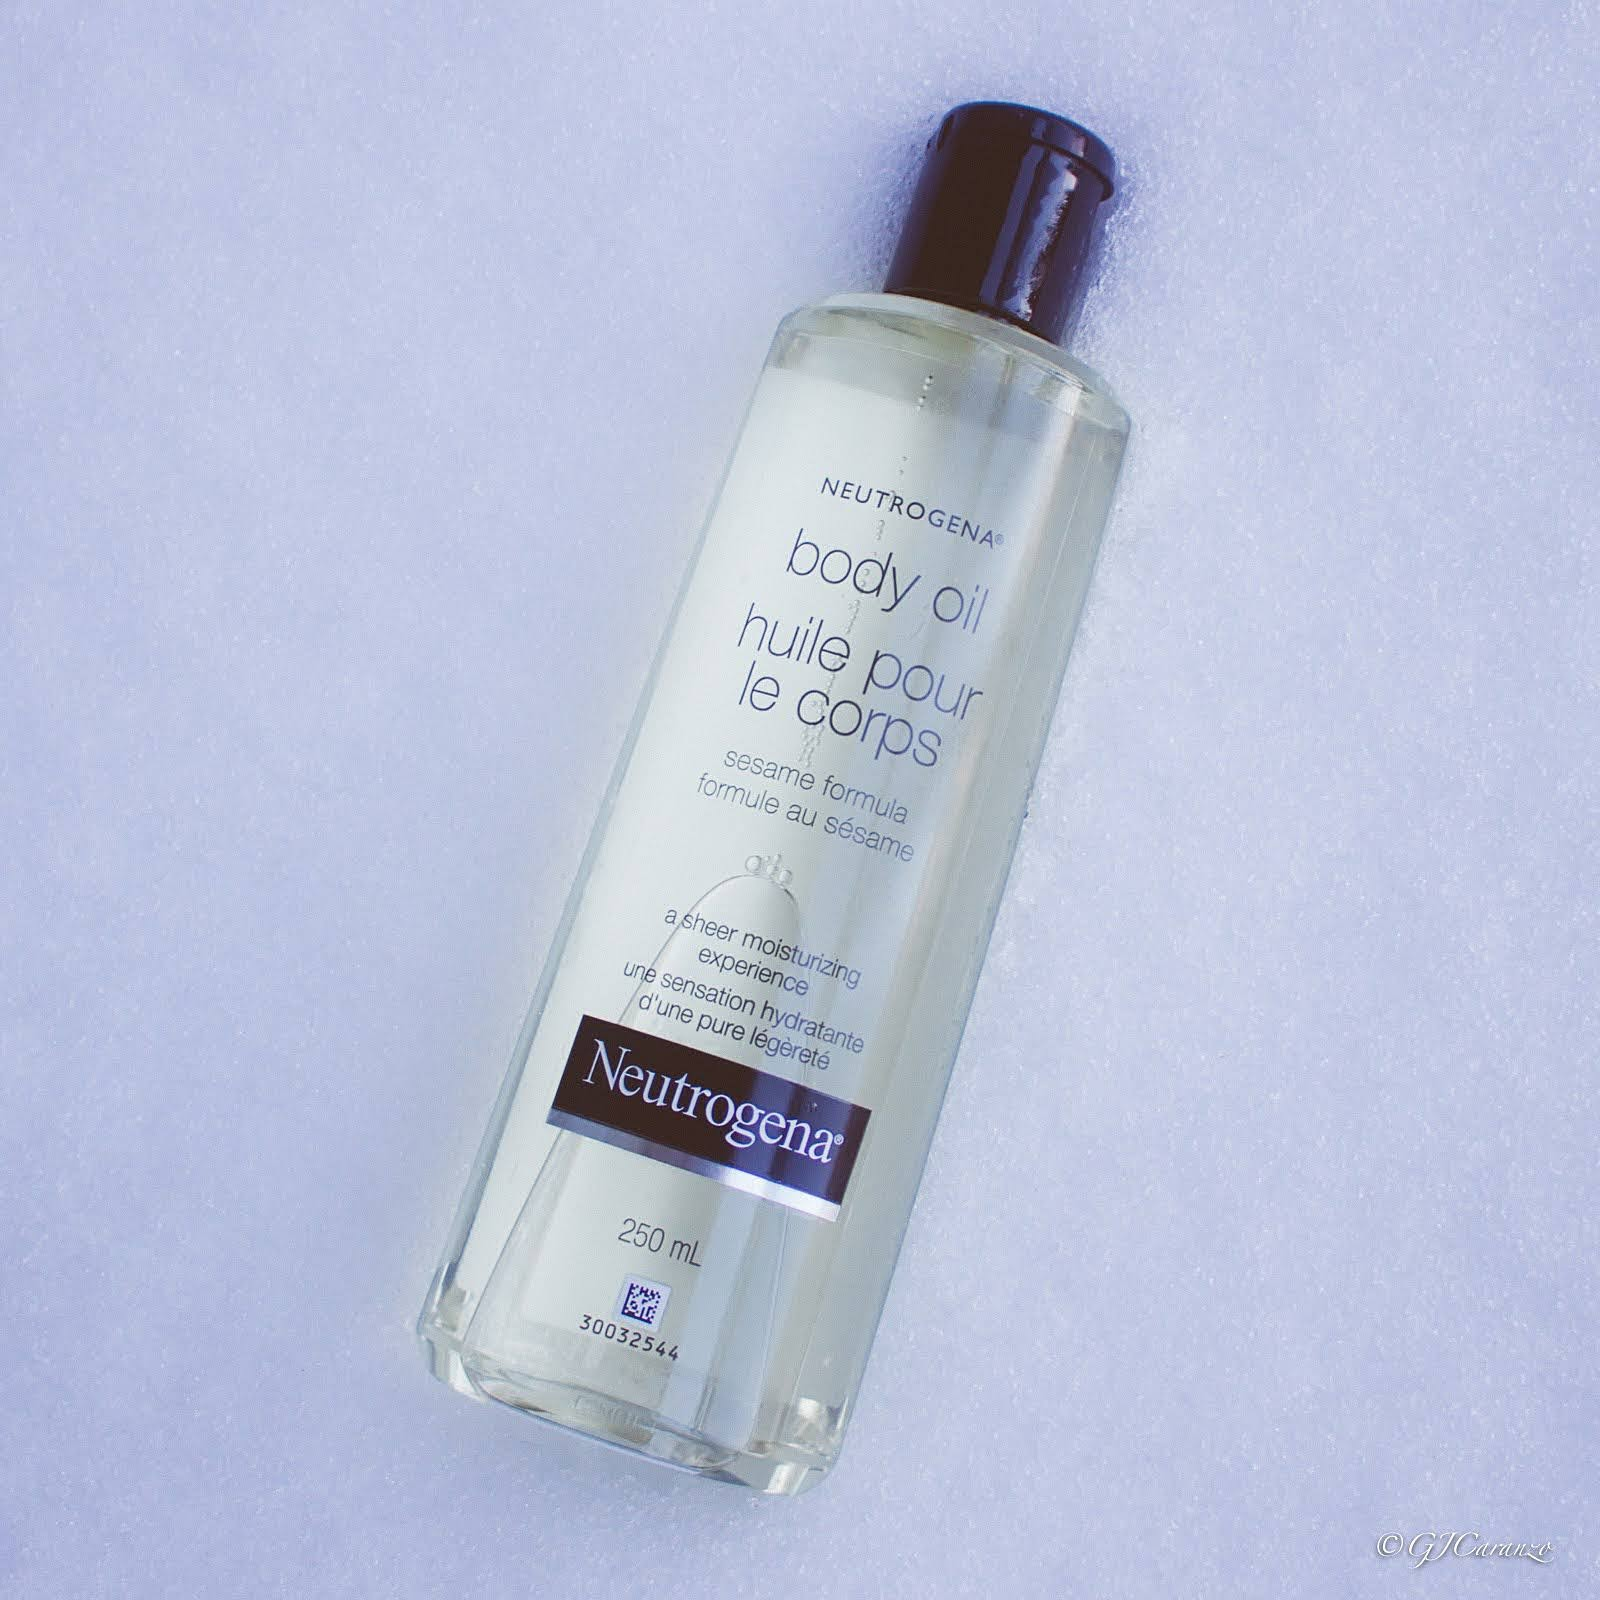 neutrogena body oil review